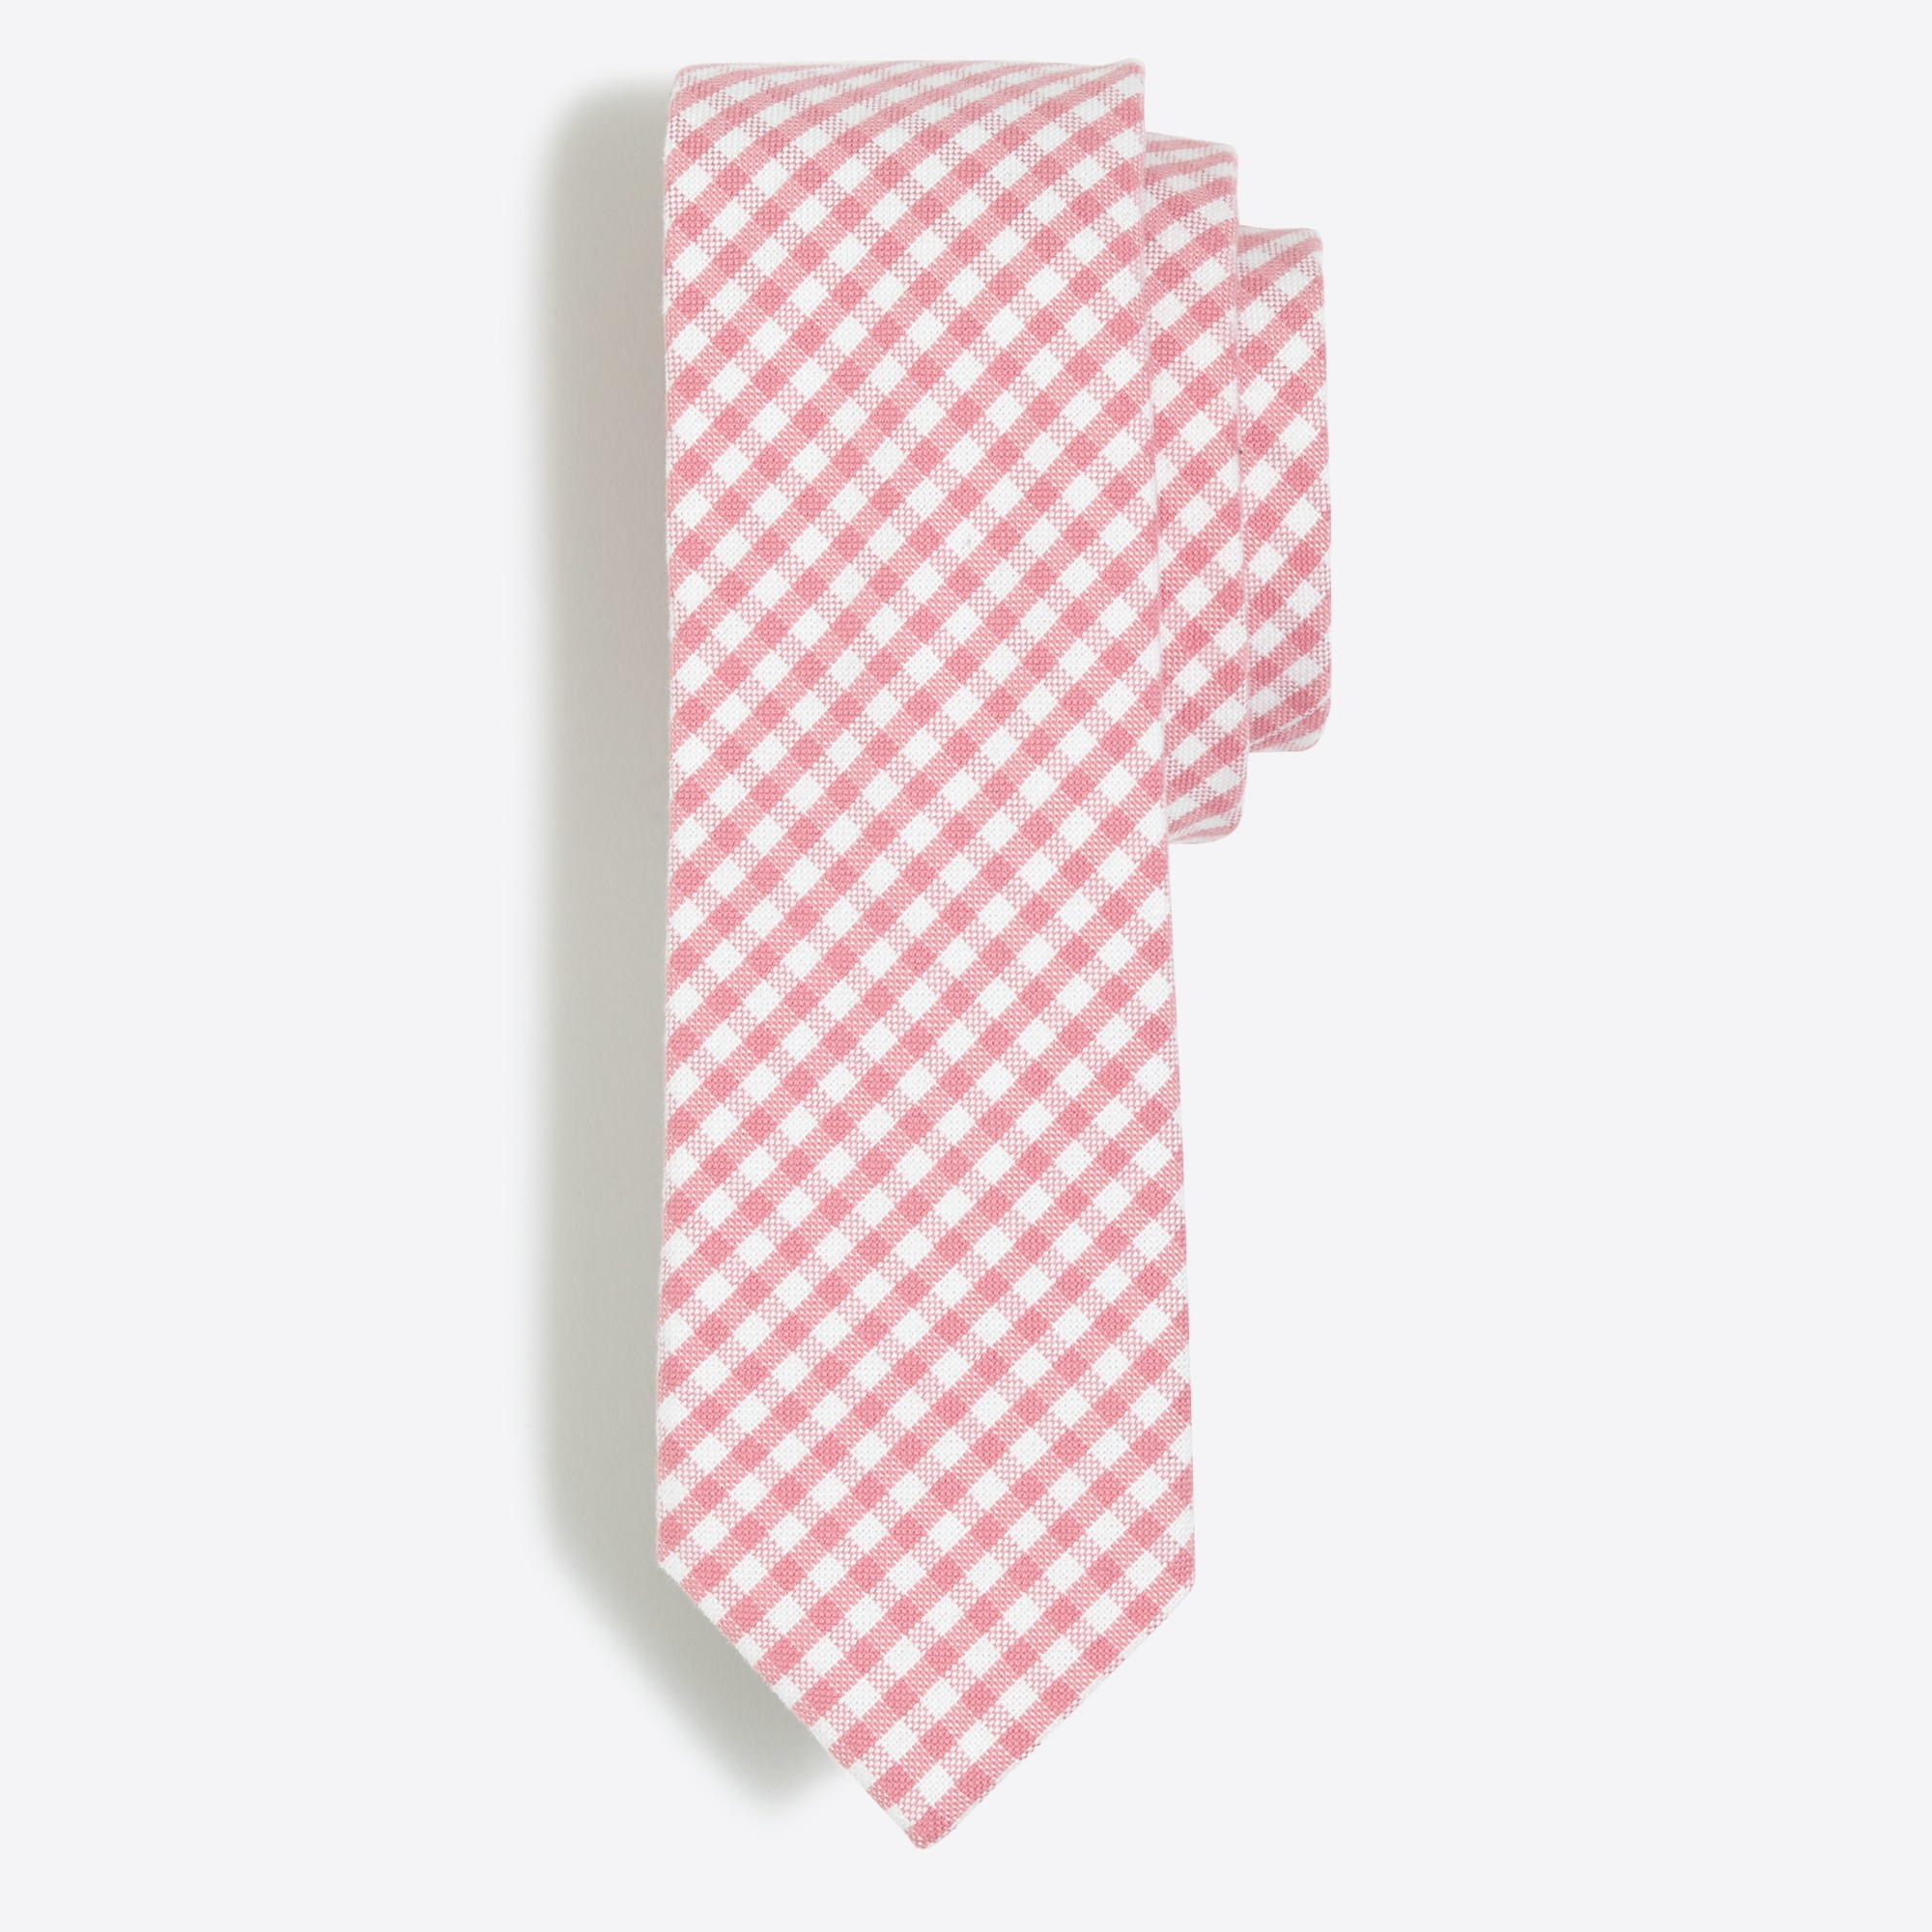 plaid oxford tie : factorymen ties